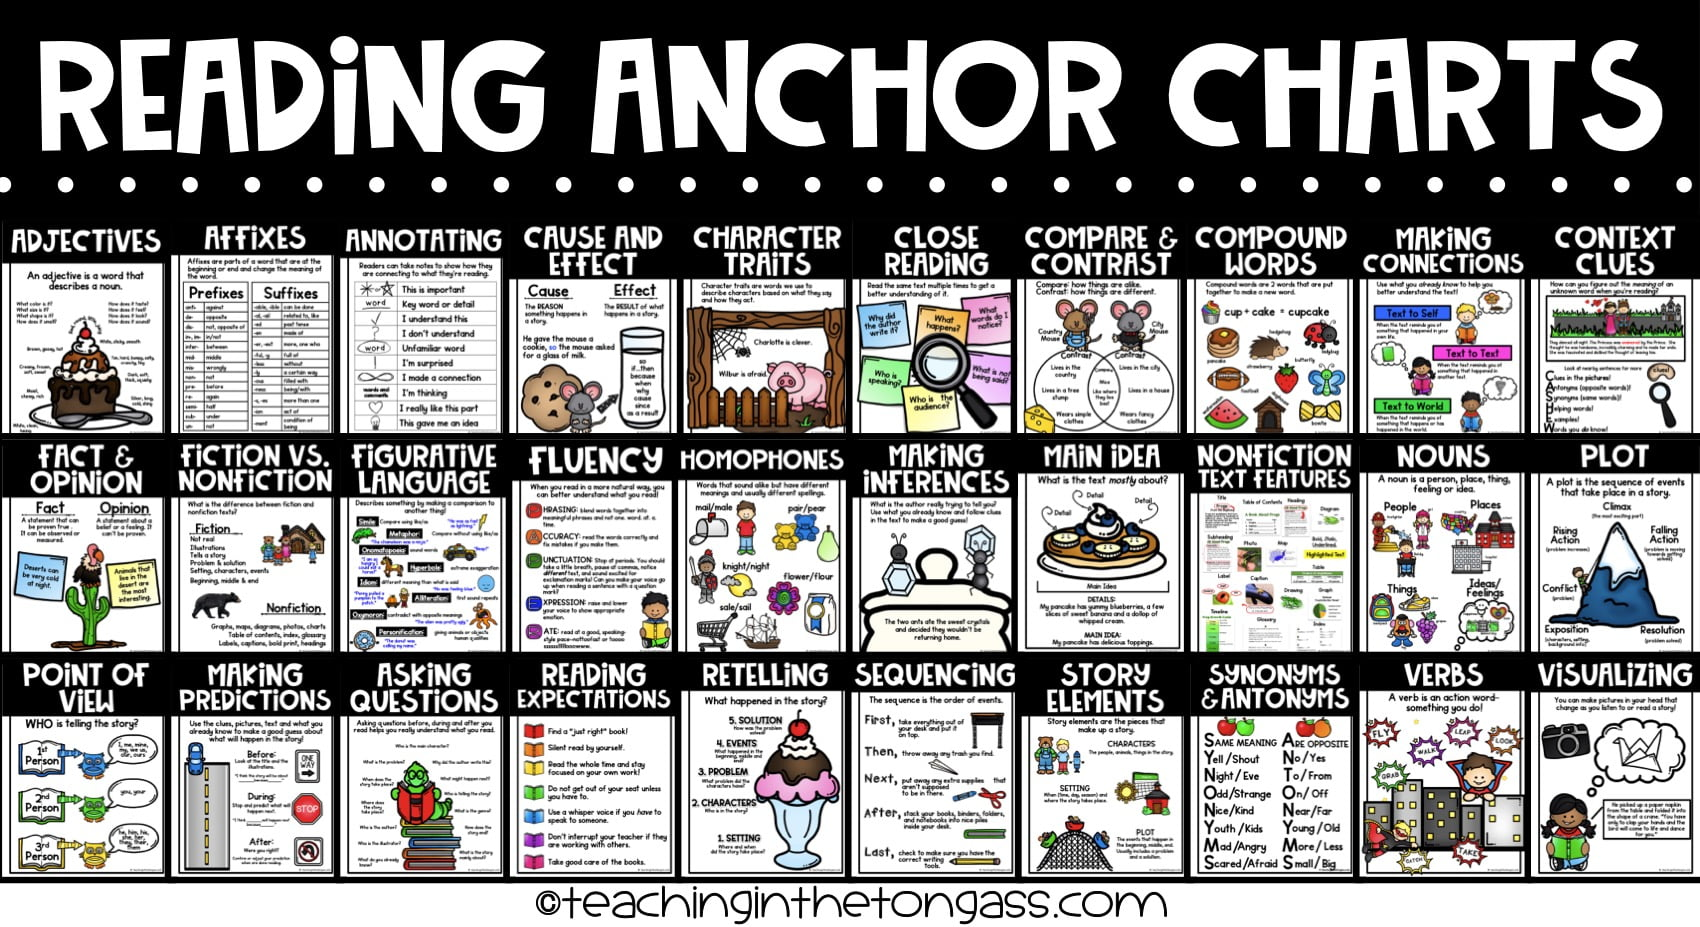 Reading Anchor Charts Bundle Teaching In The Tongass